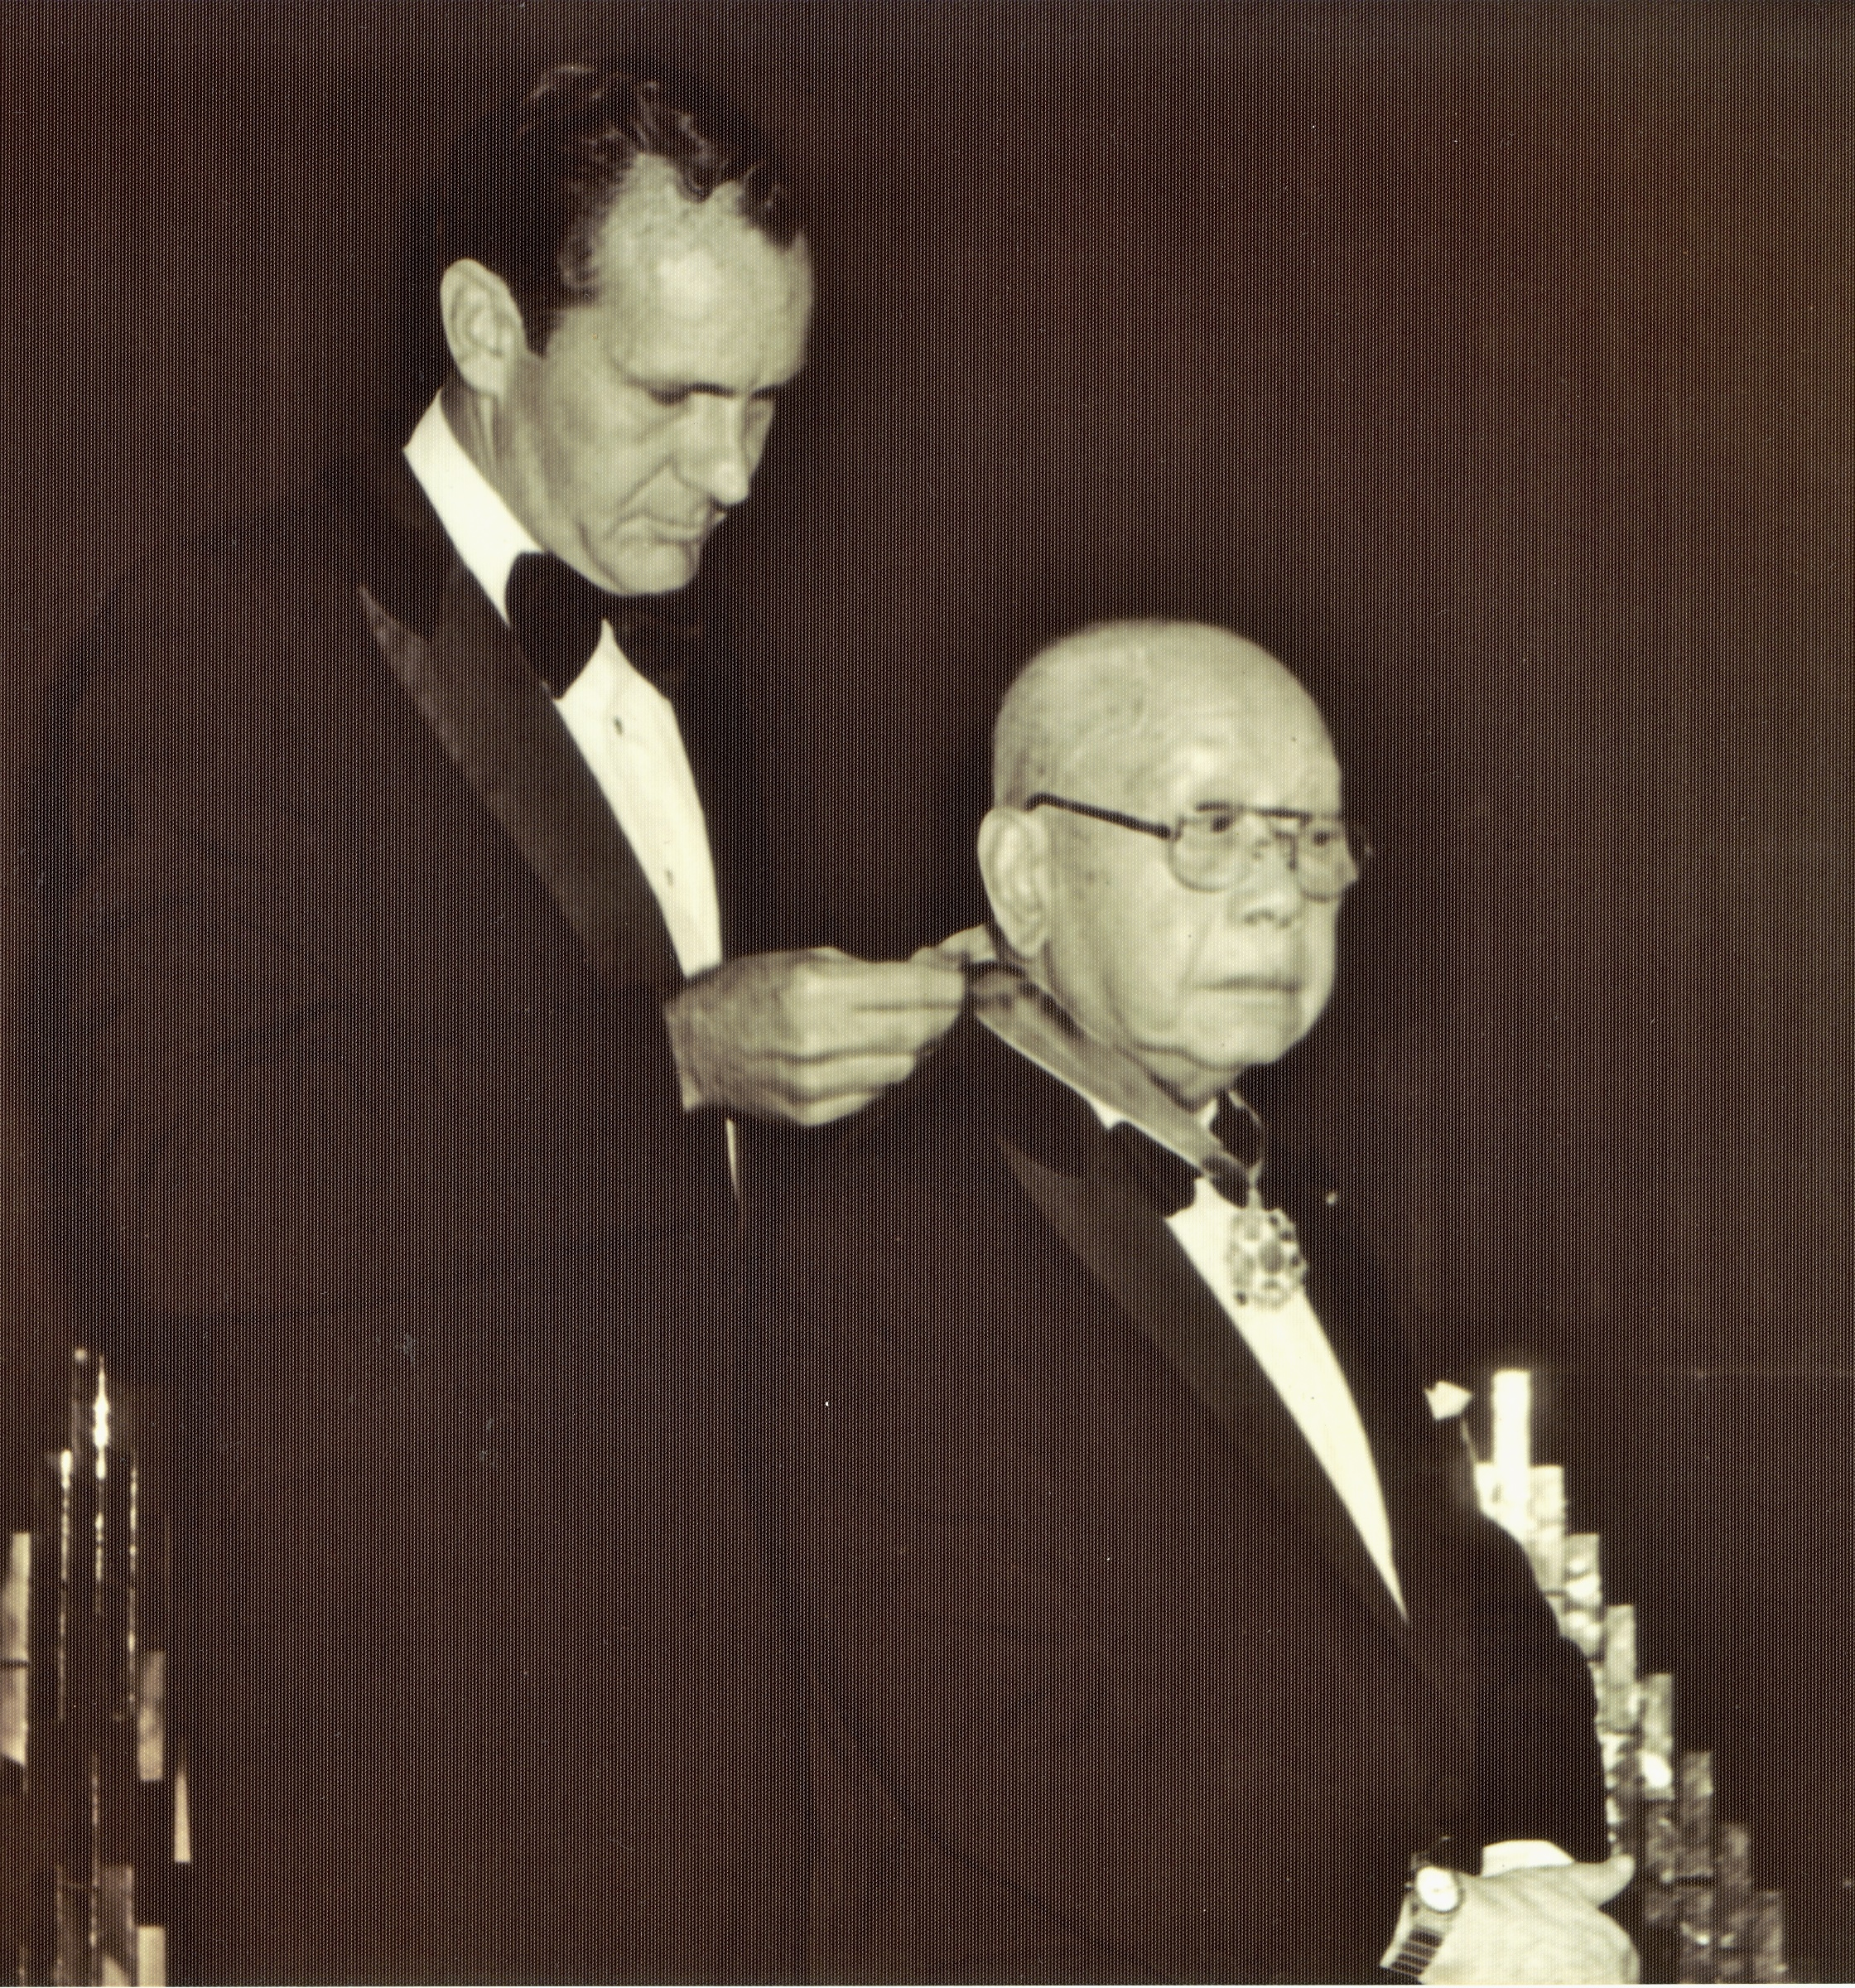 Awarding of the US Presidential Medal of Freedom